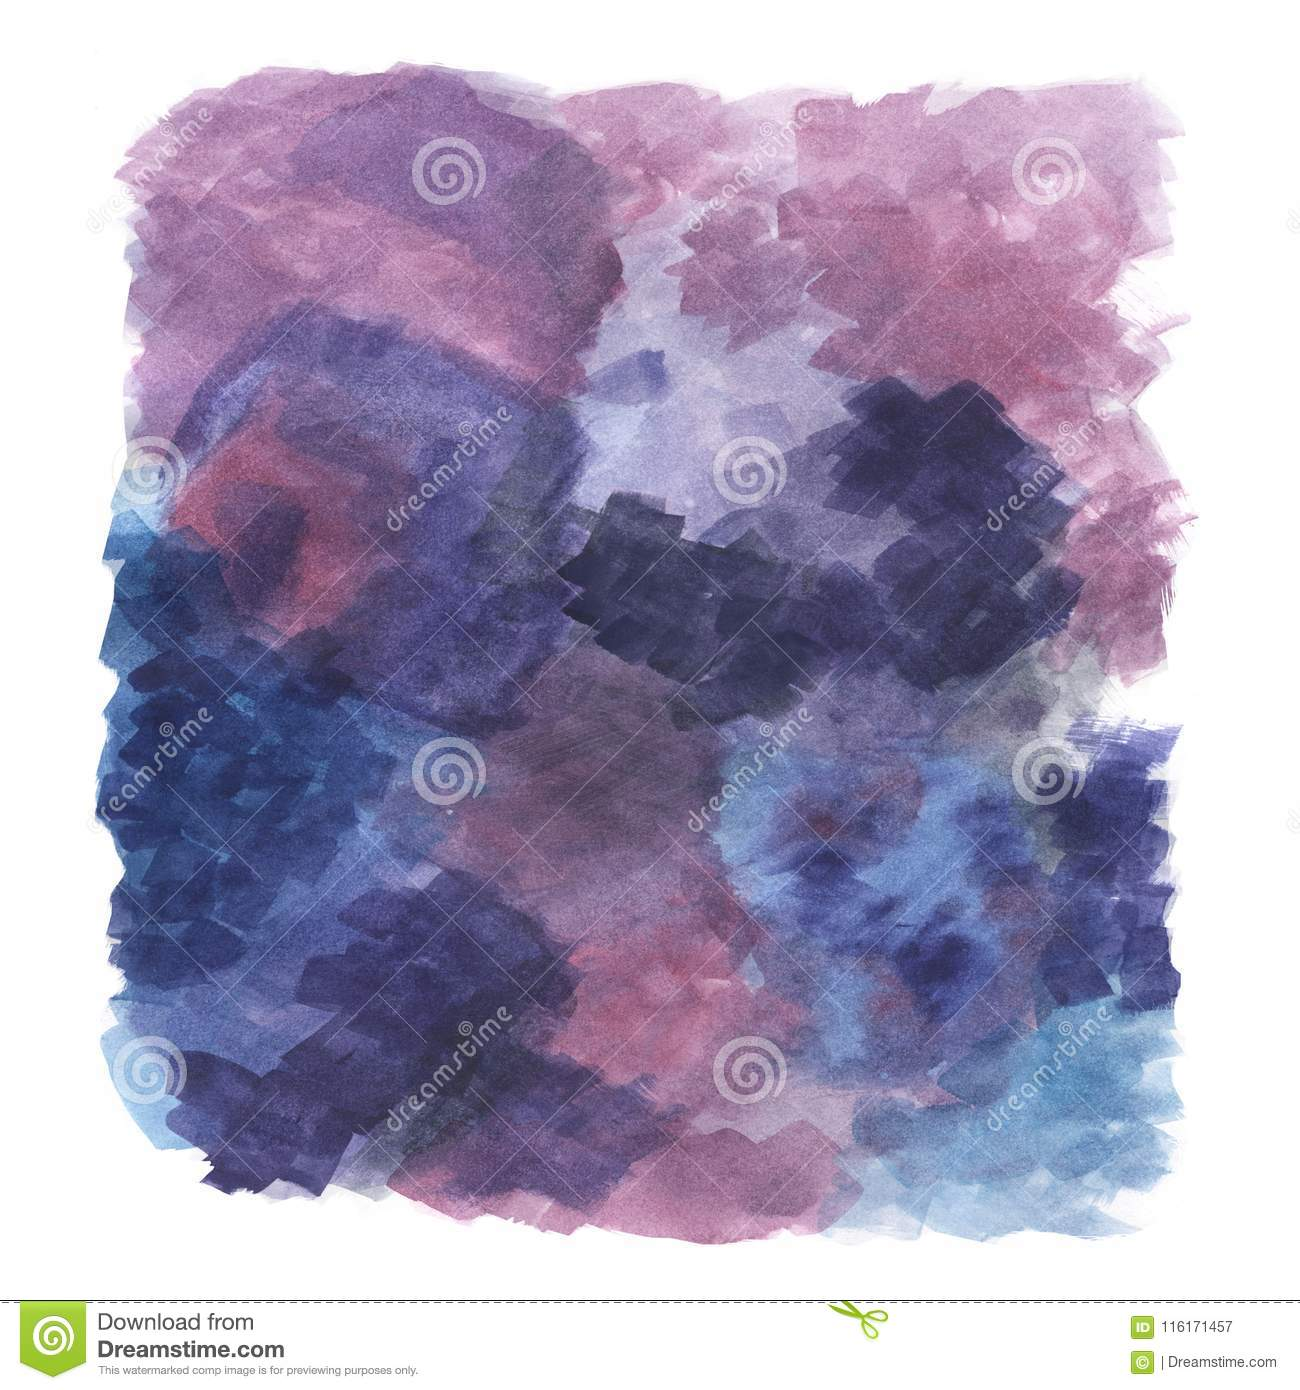 Violet, purple abstract illustration of hand-drawn watercolor painting, artistic background